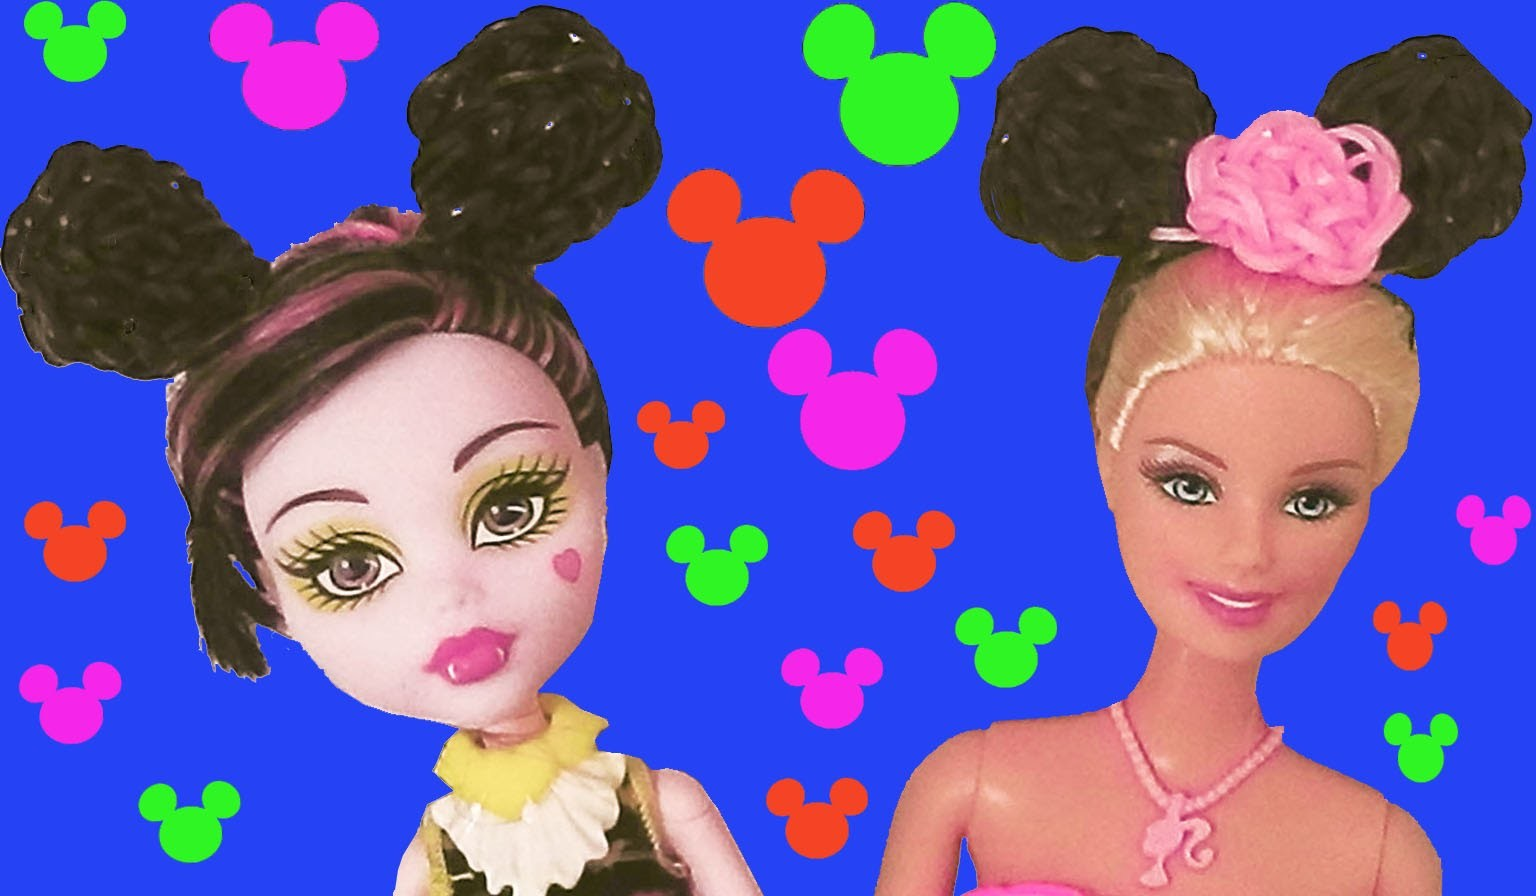 How to make a headband with mickey ears for barbie doll with loom bands without rainbow loom 2 forks